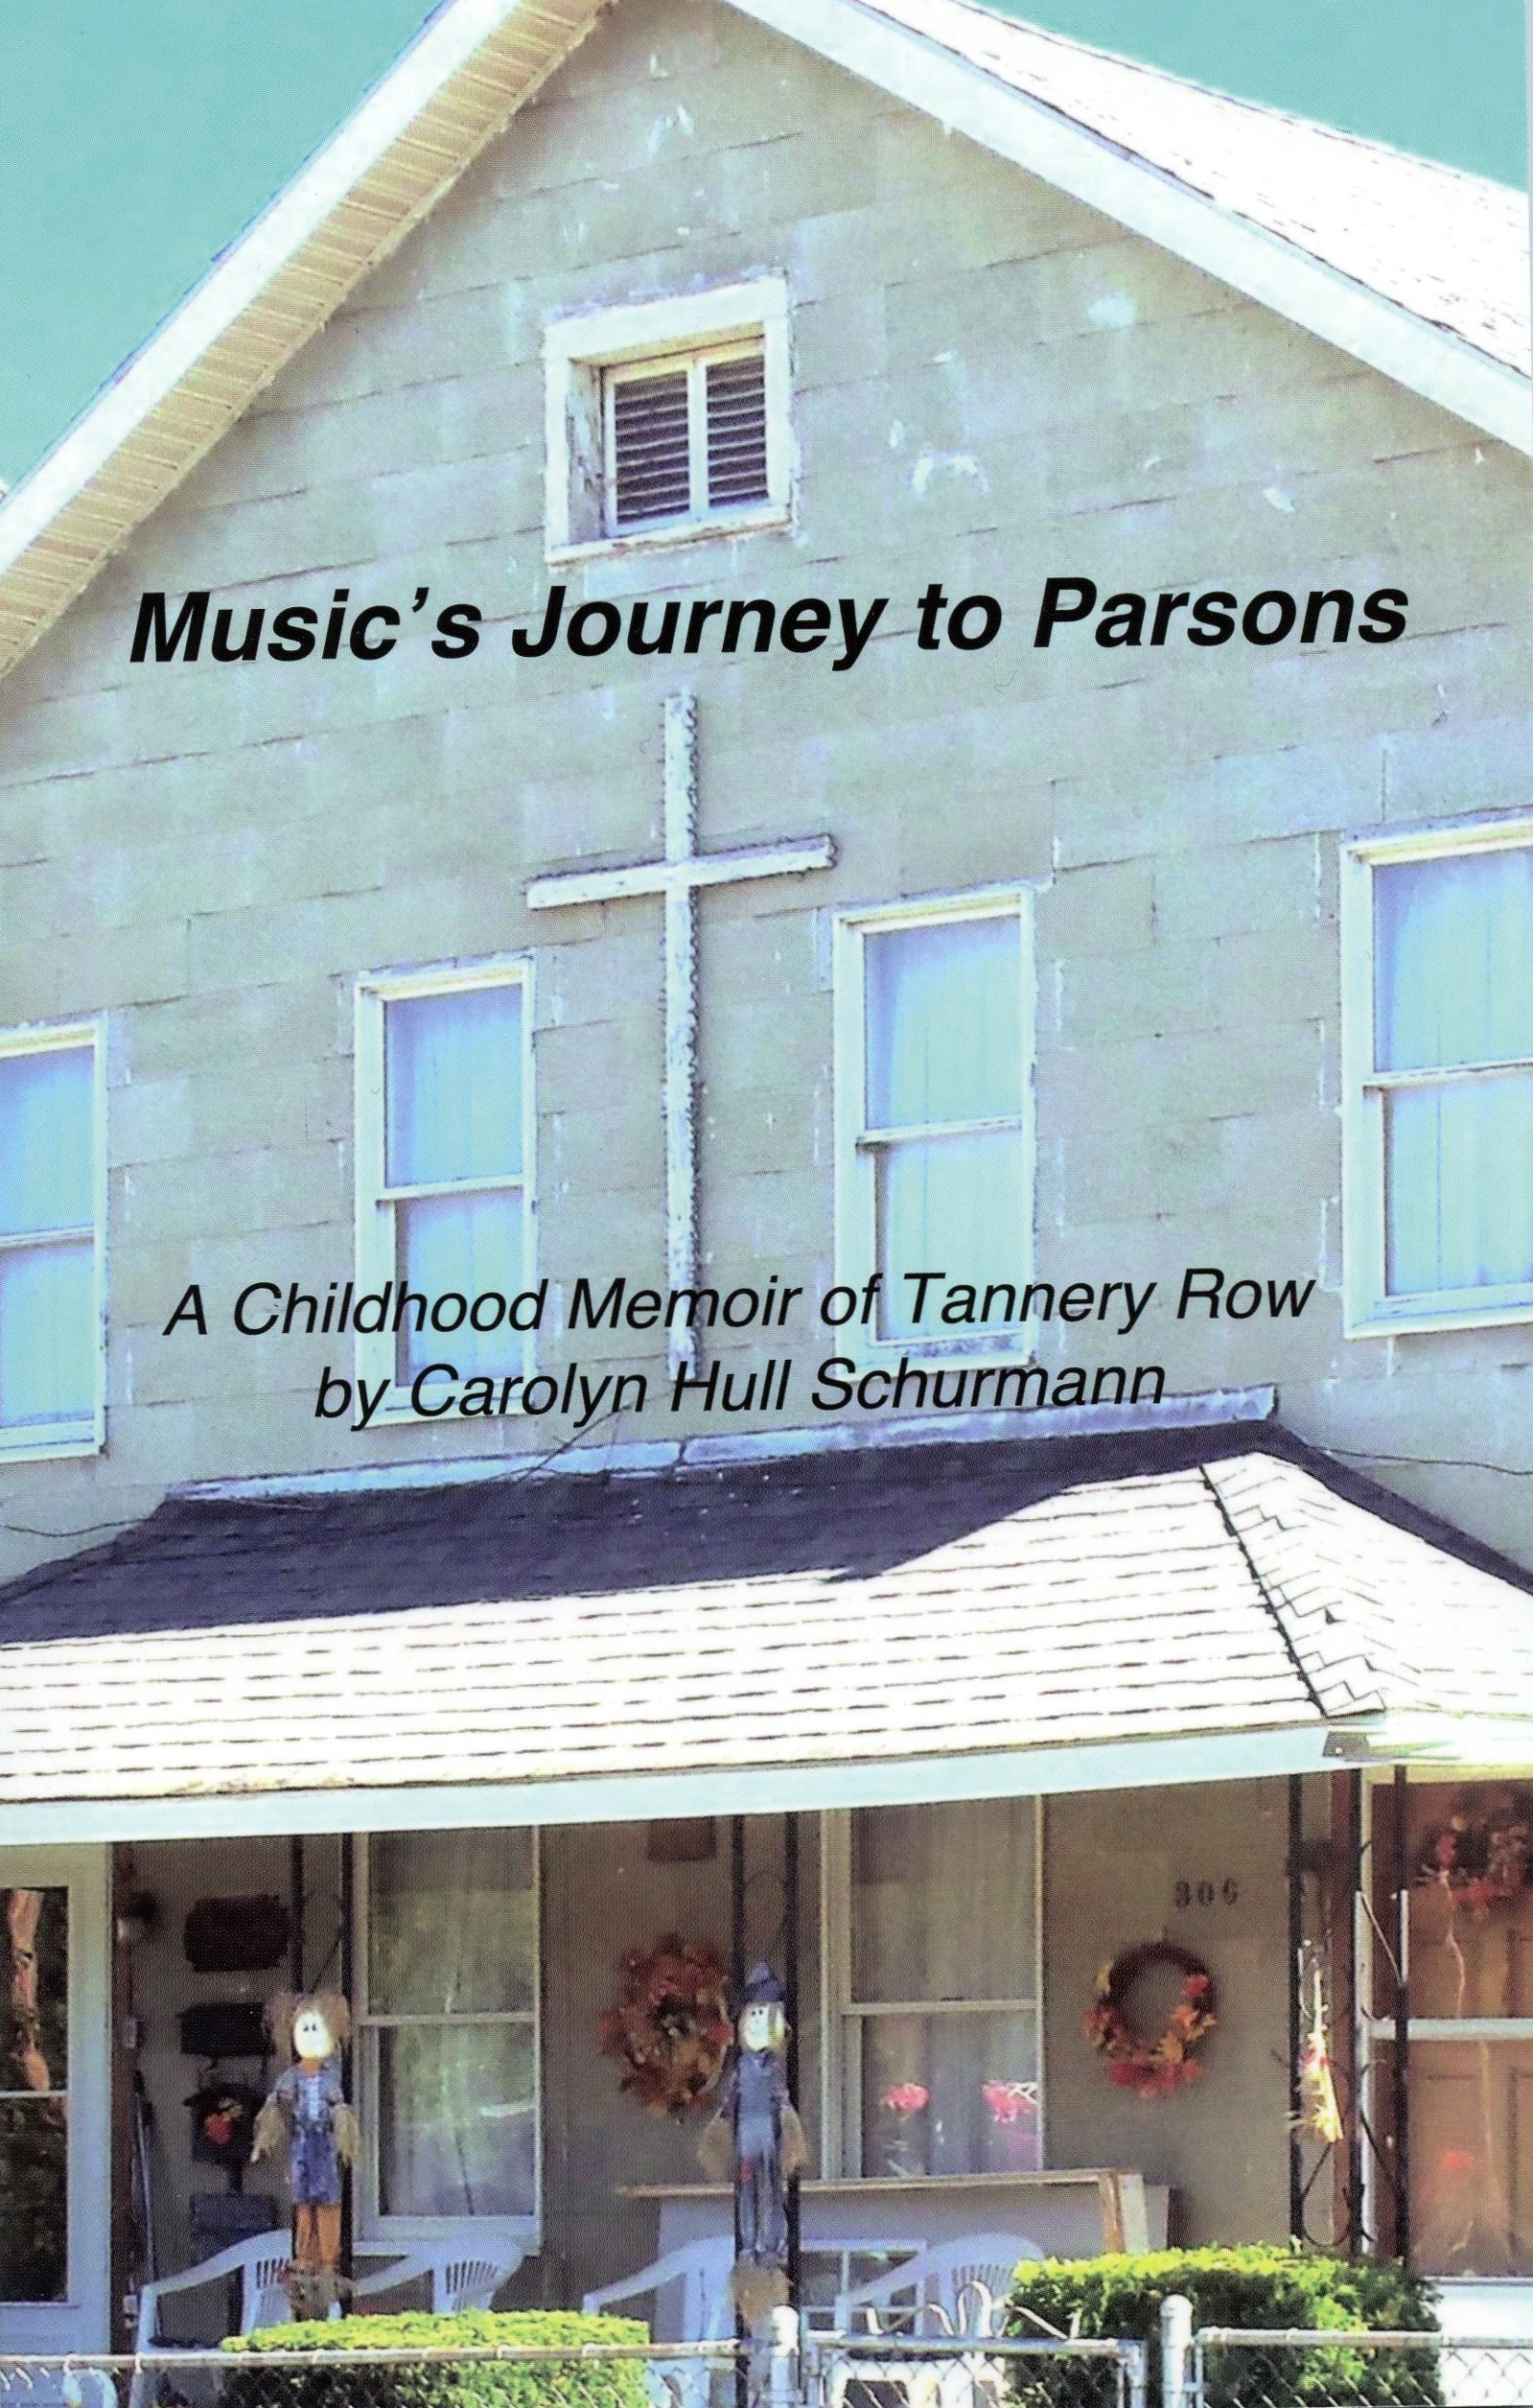 Music's Journey to Parsons -- A Childhood Memoir of Tannery Row